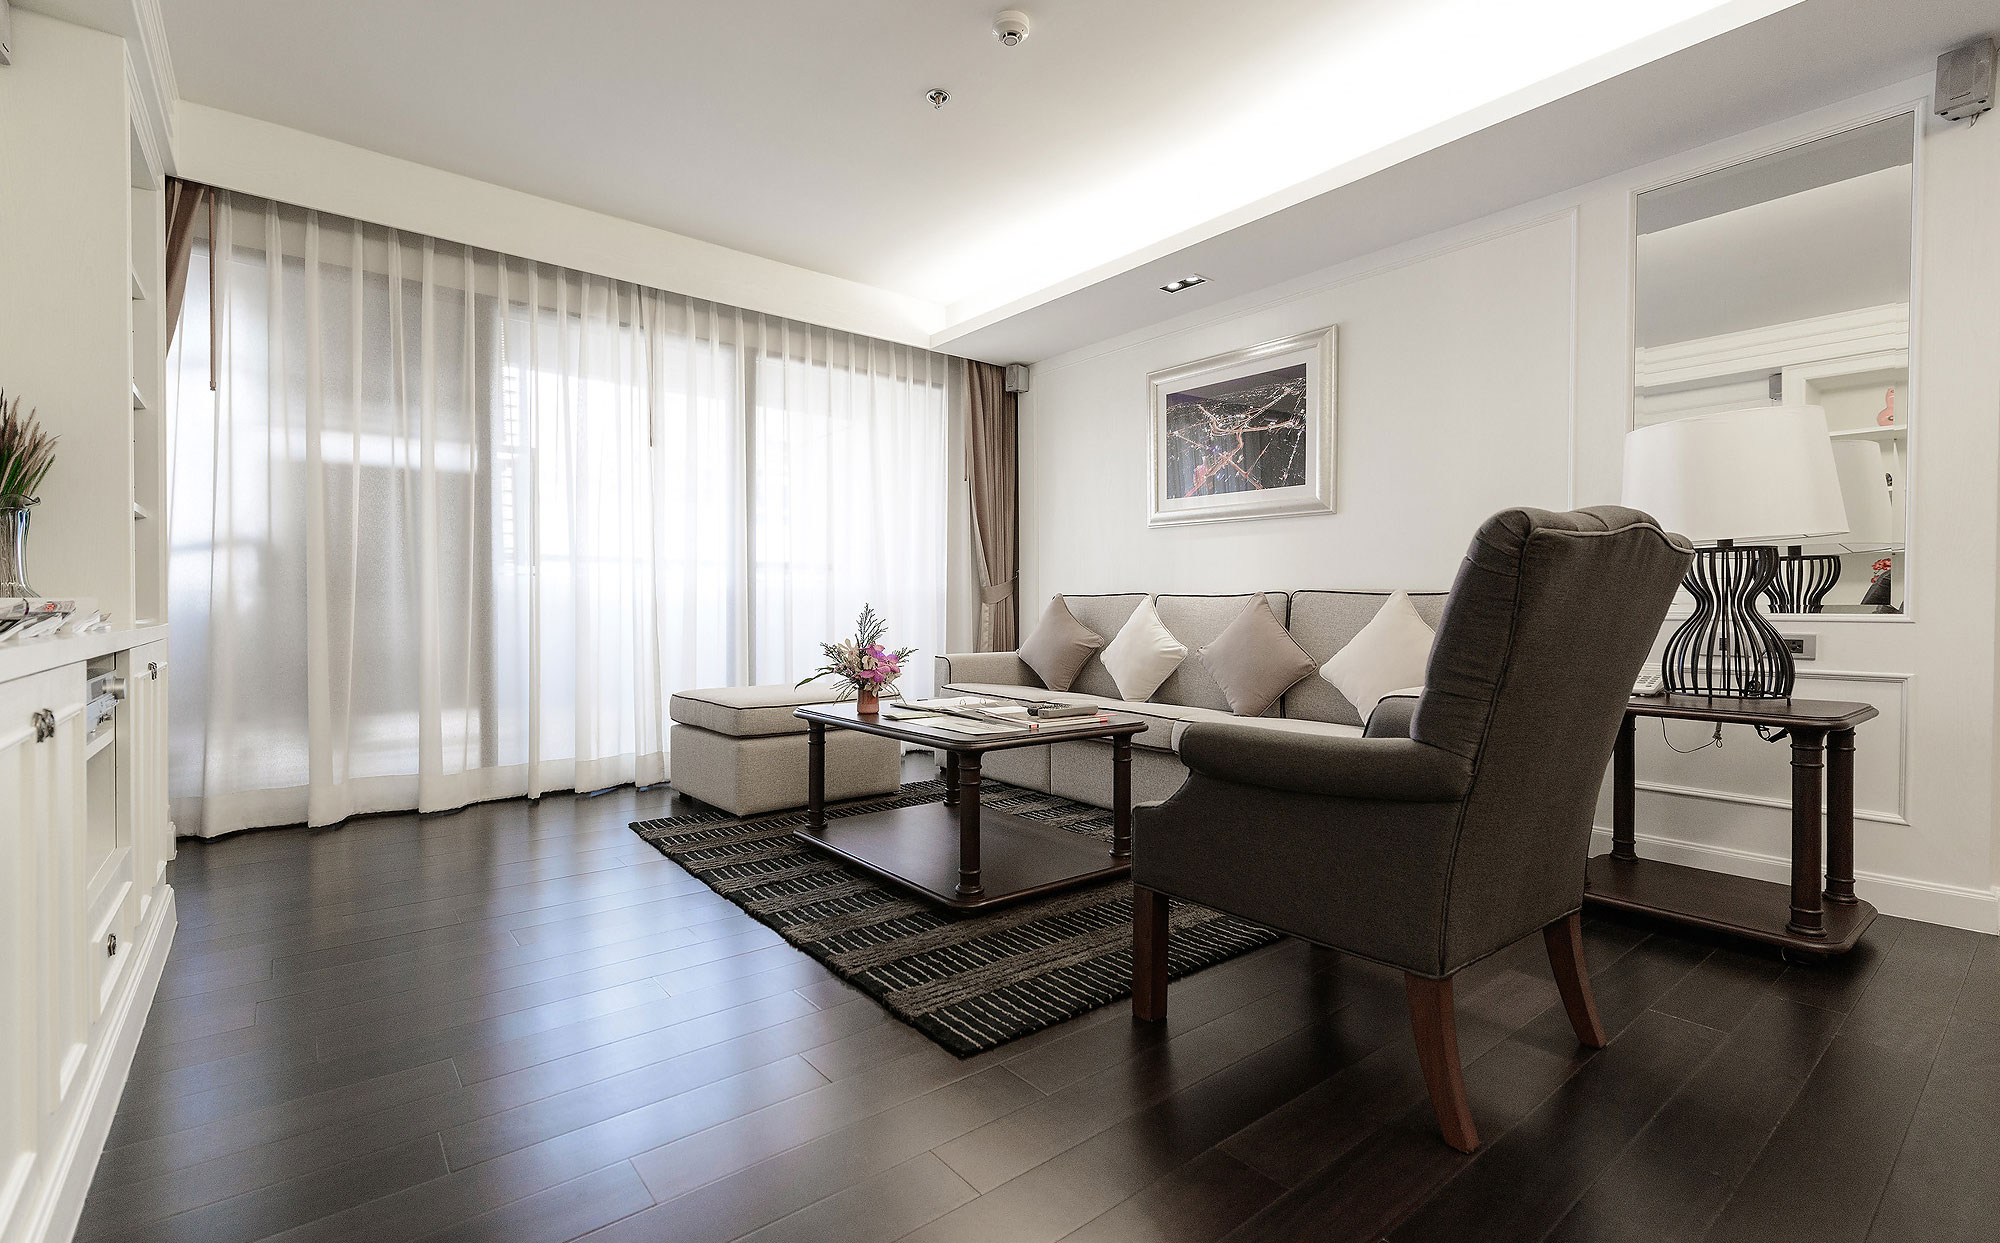 2-Bedroom Platinum Suite (125 sqm.)